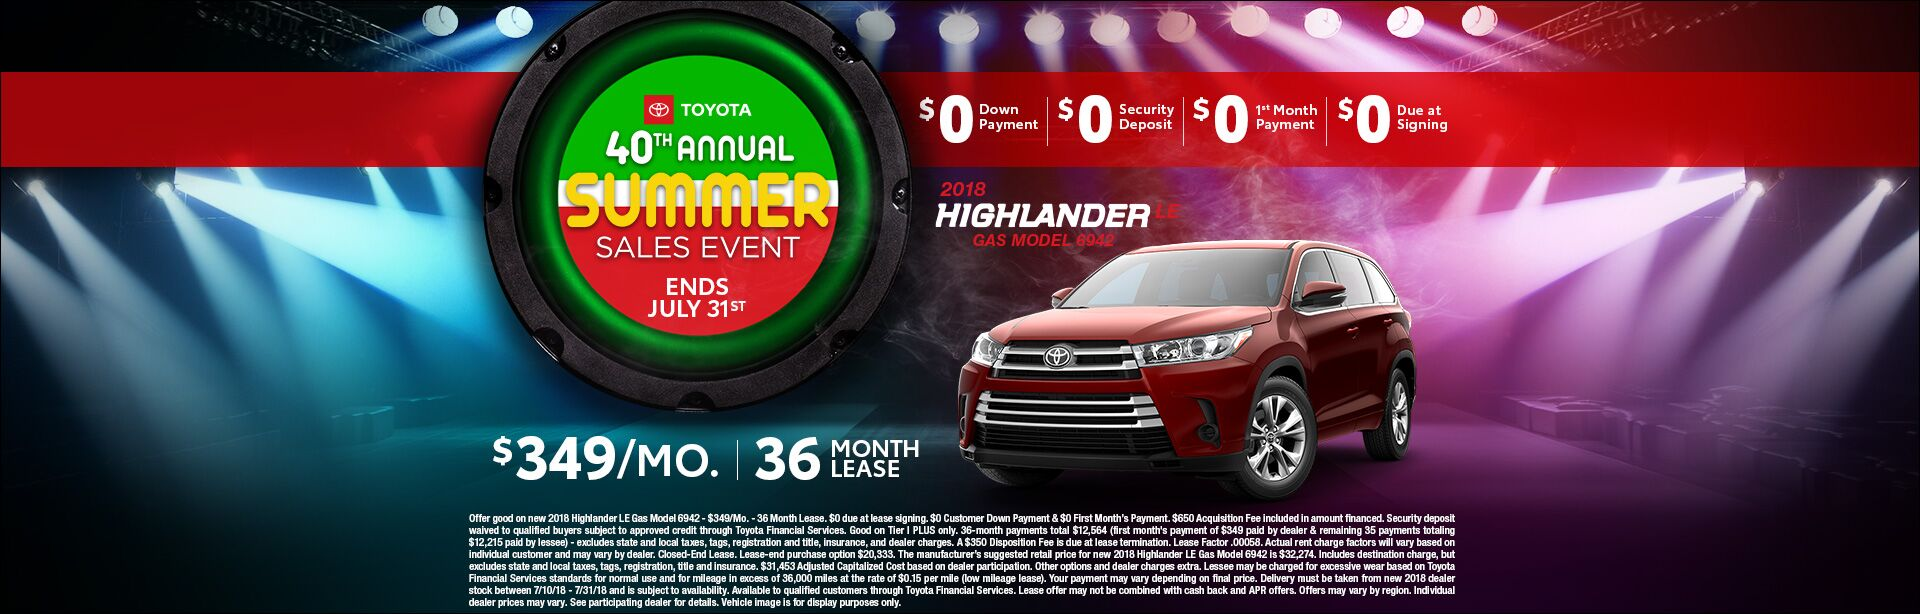 Toyota Summer Sales Event Highlander Lease